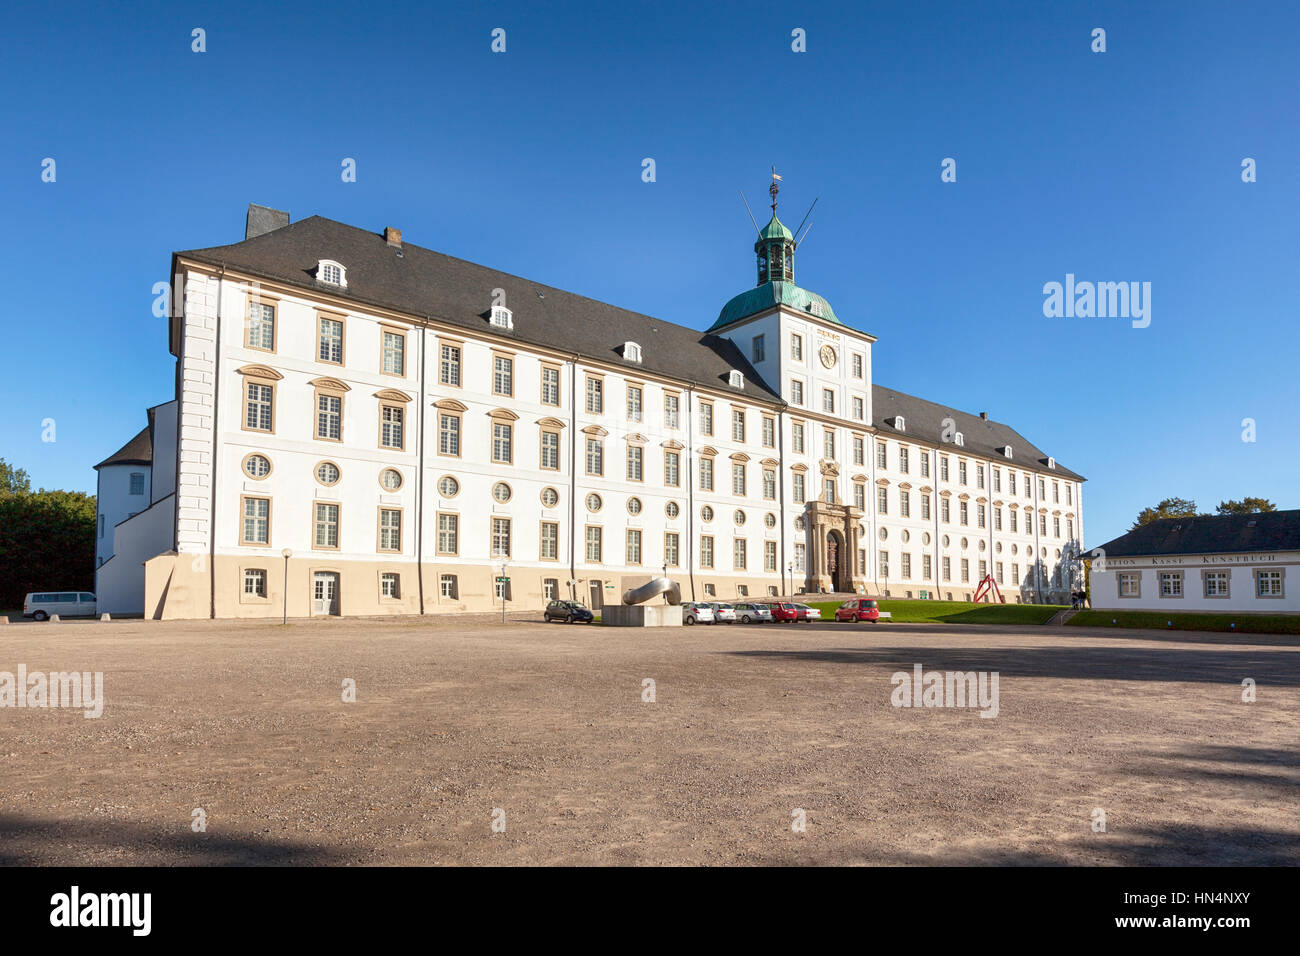 Schleswig, Germany - September 27, 2015: Gottorf Castle, built in the late 17th century, since 2006 seat of the - Stock Image